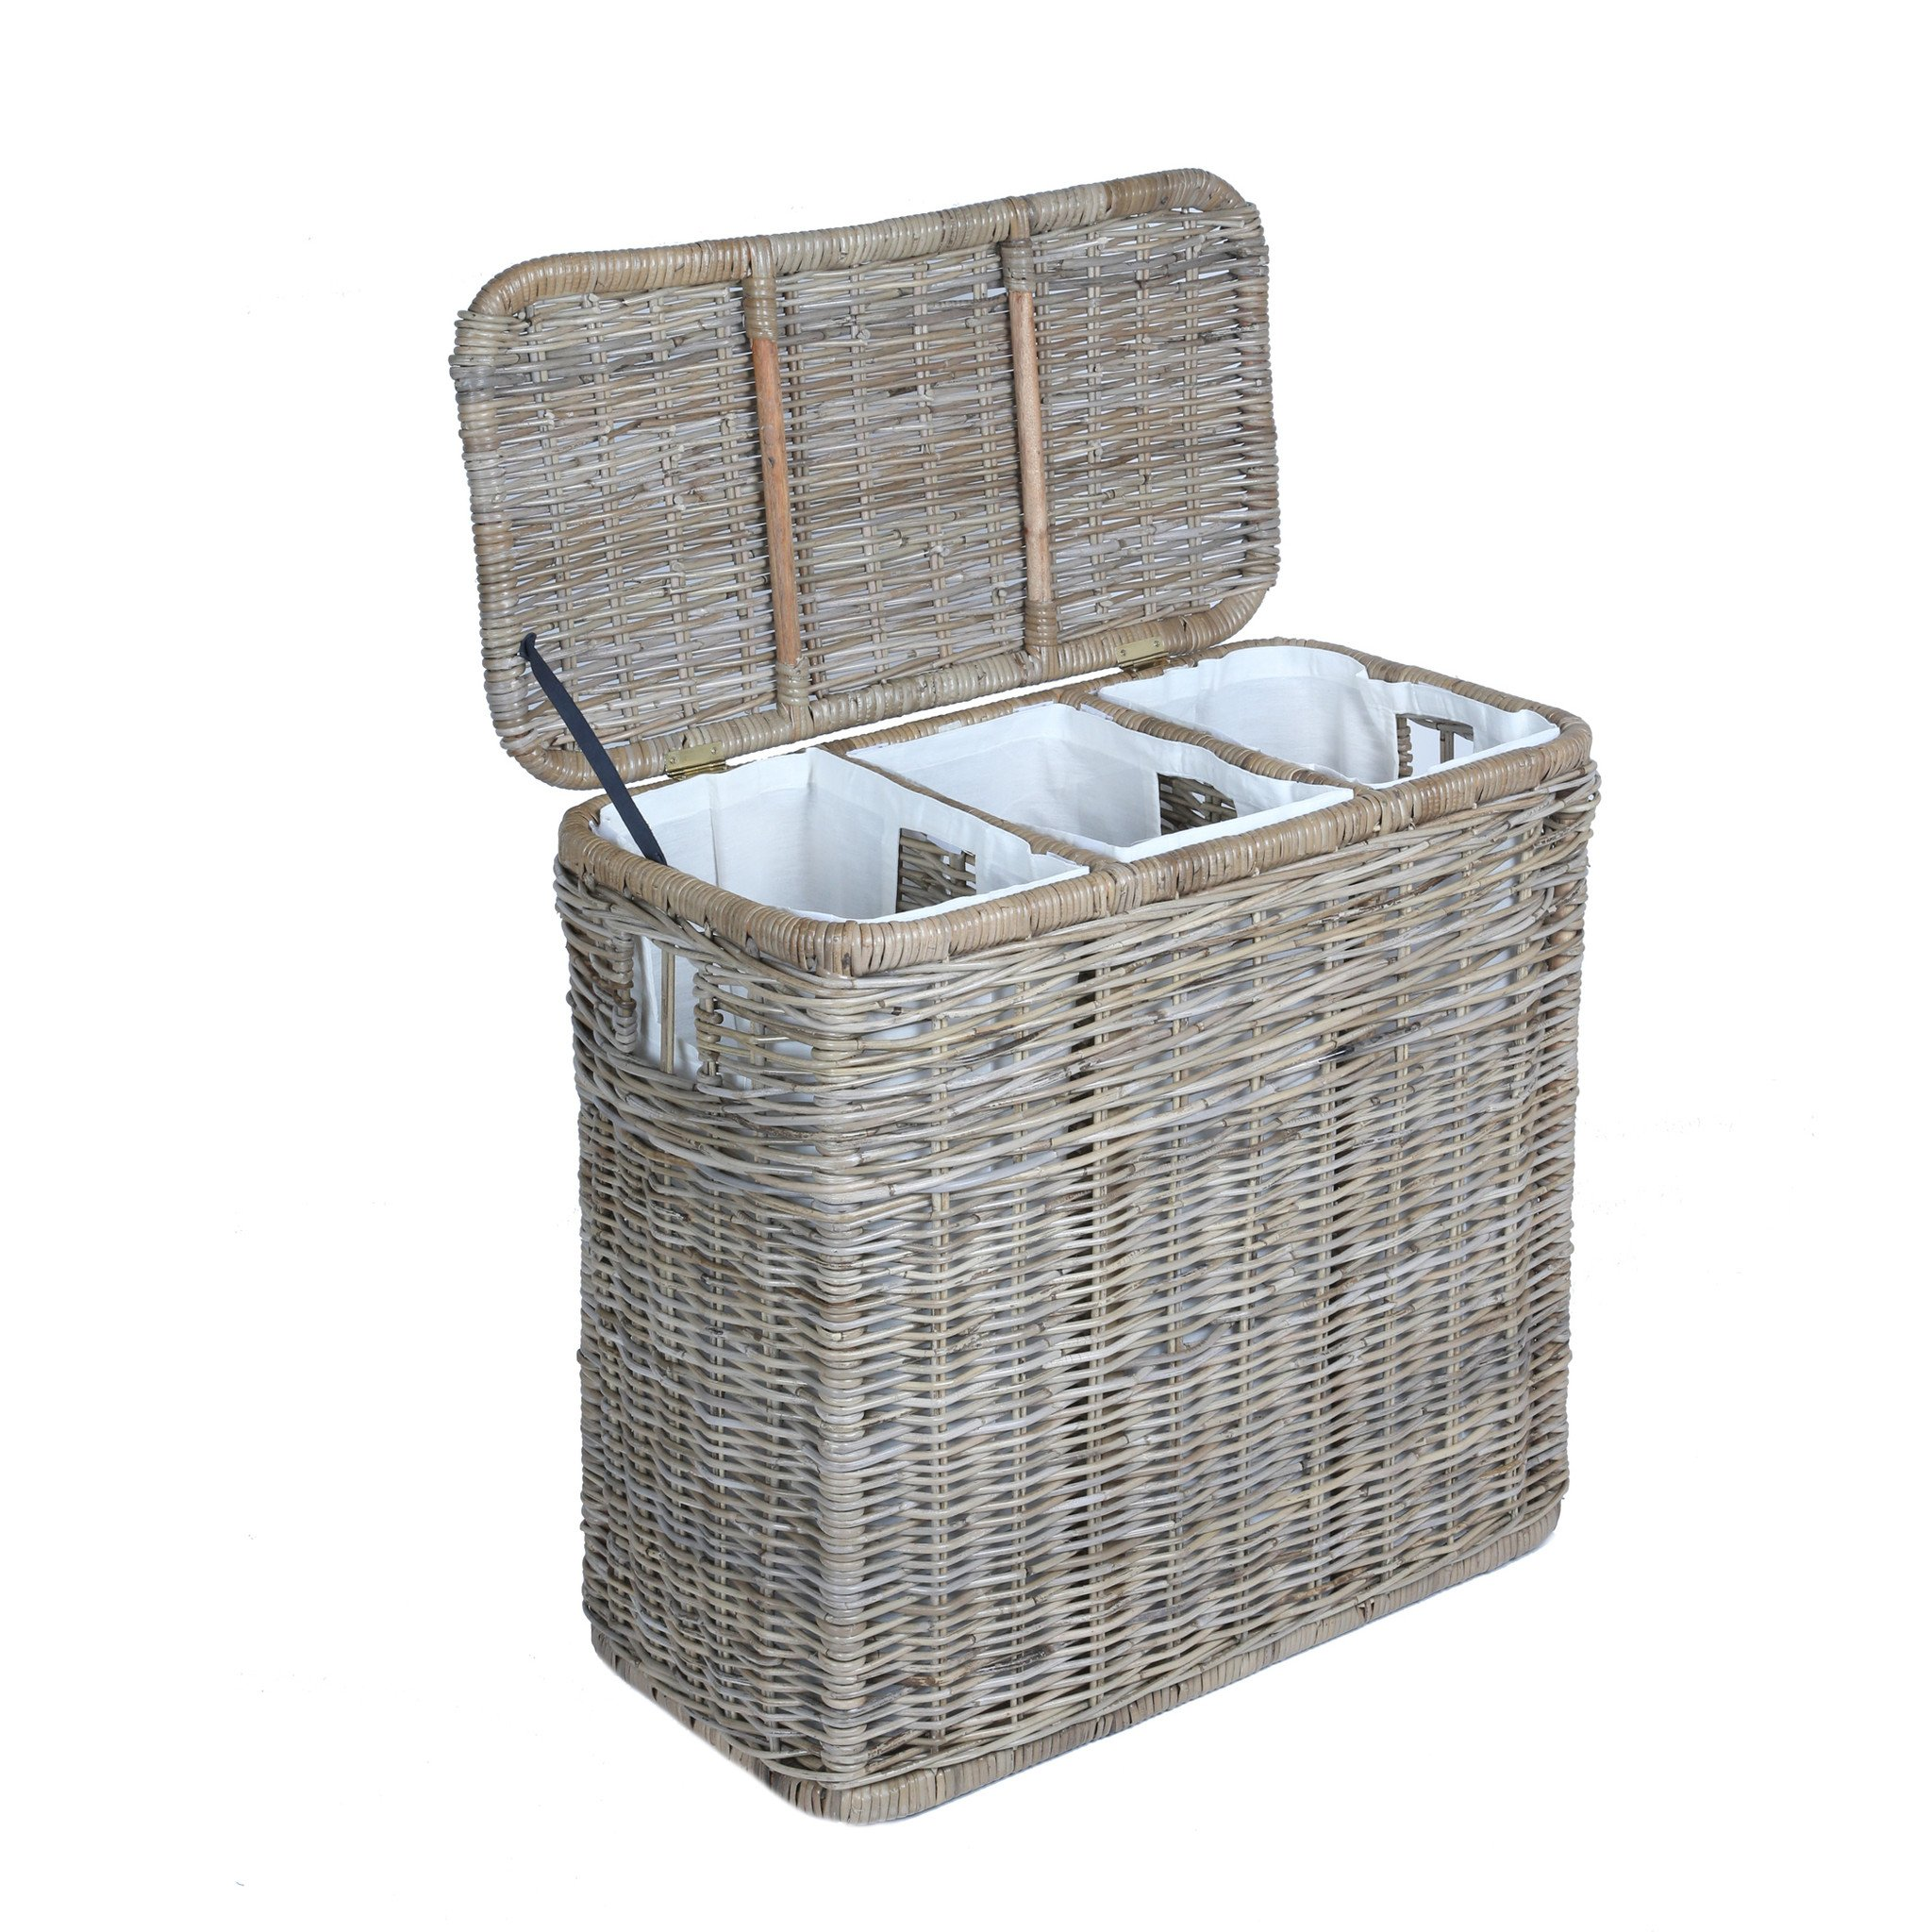 Laundry Basket 3-compartment kubu wicker laundry hamper in serene grey with lid open | the FGYNOAV